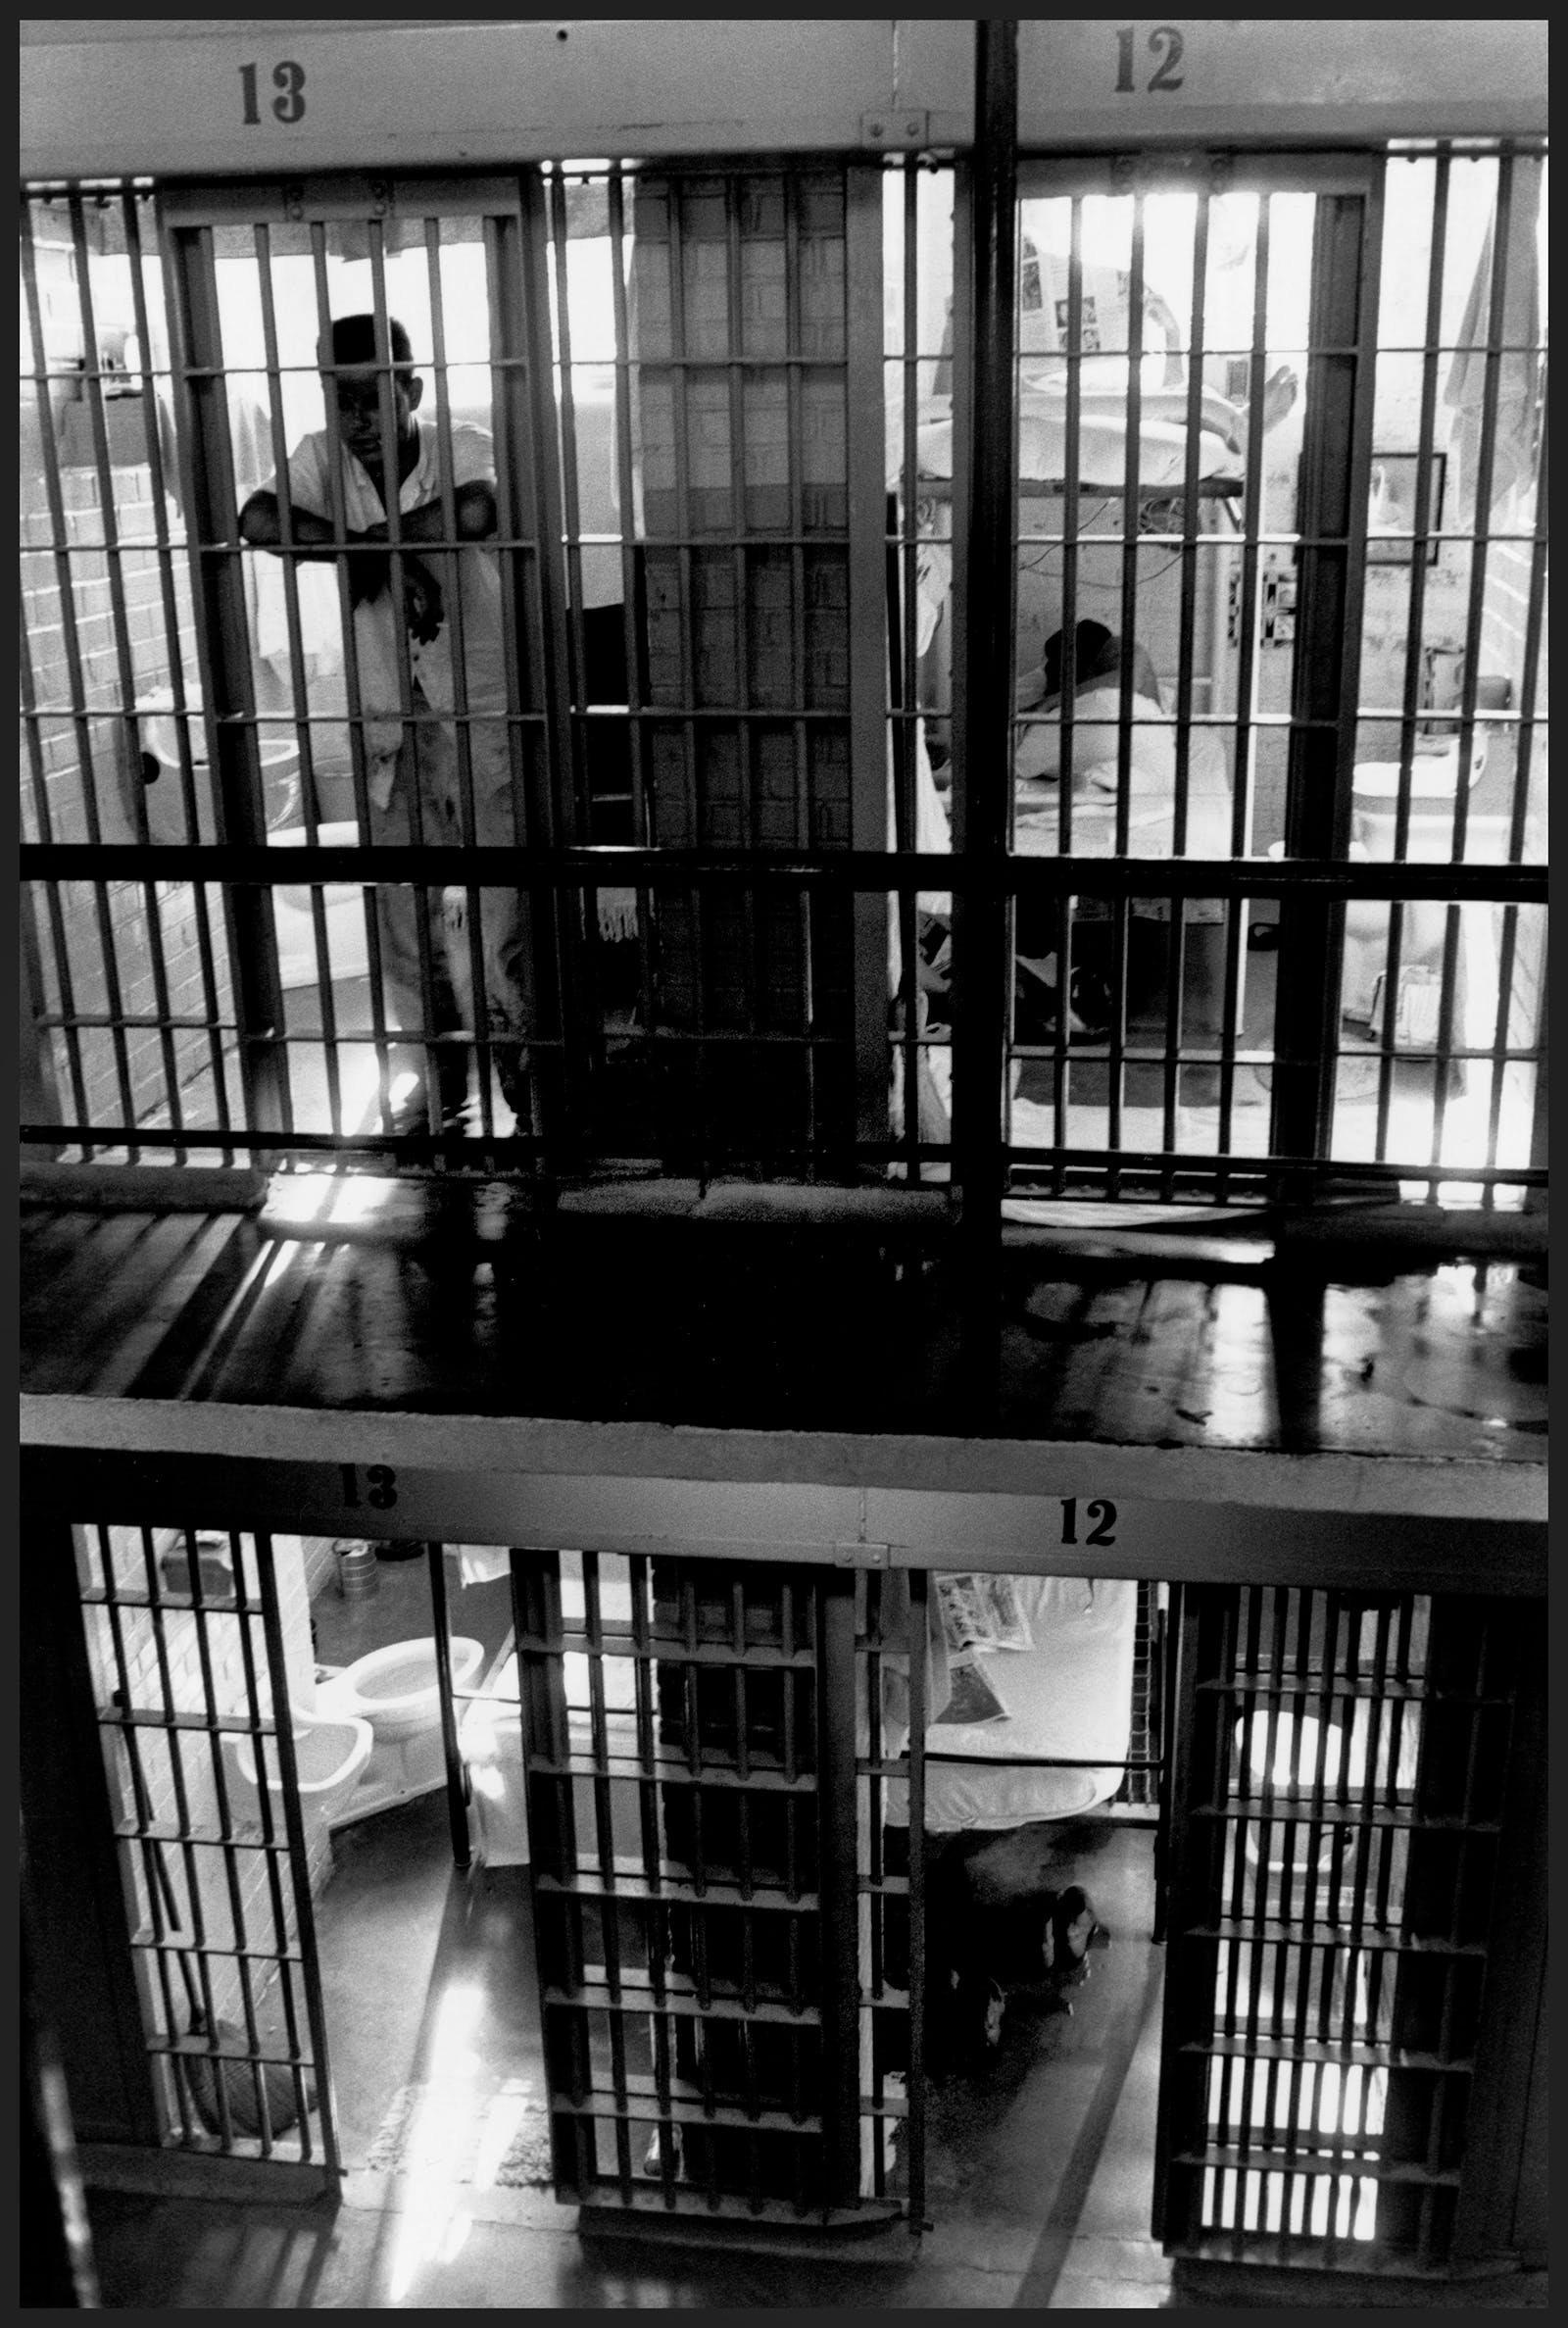 The Love Story That Upended the Texas Prison System